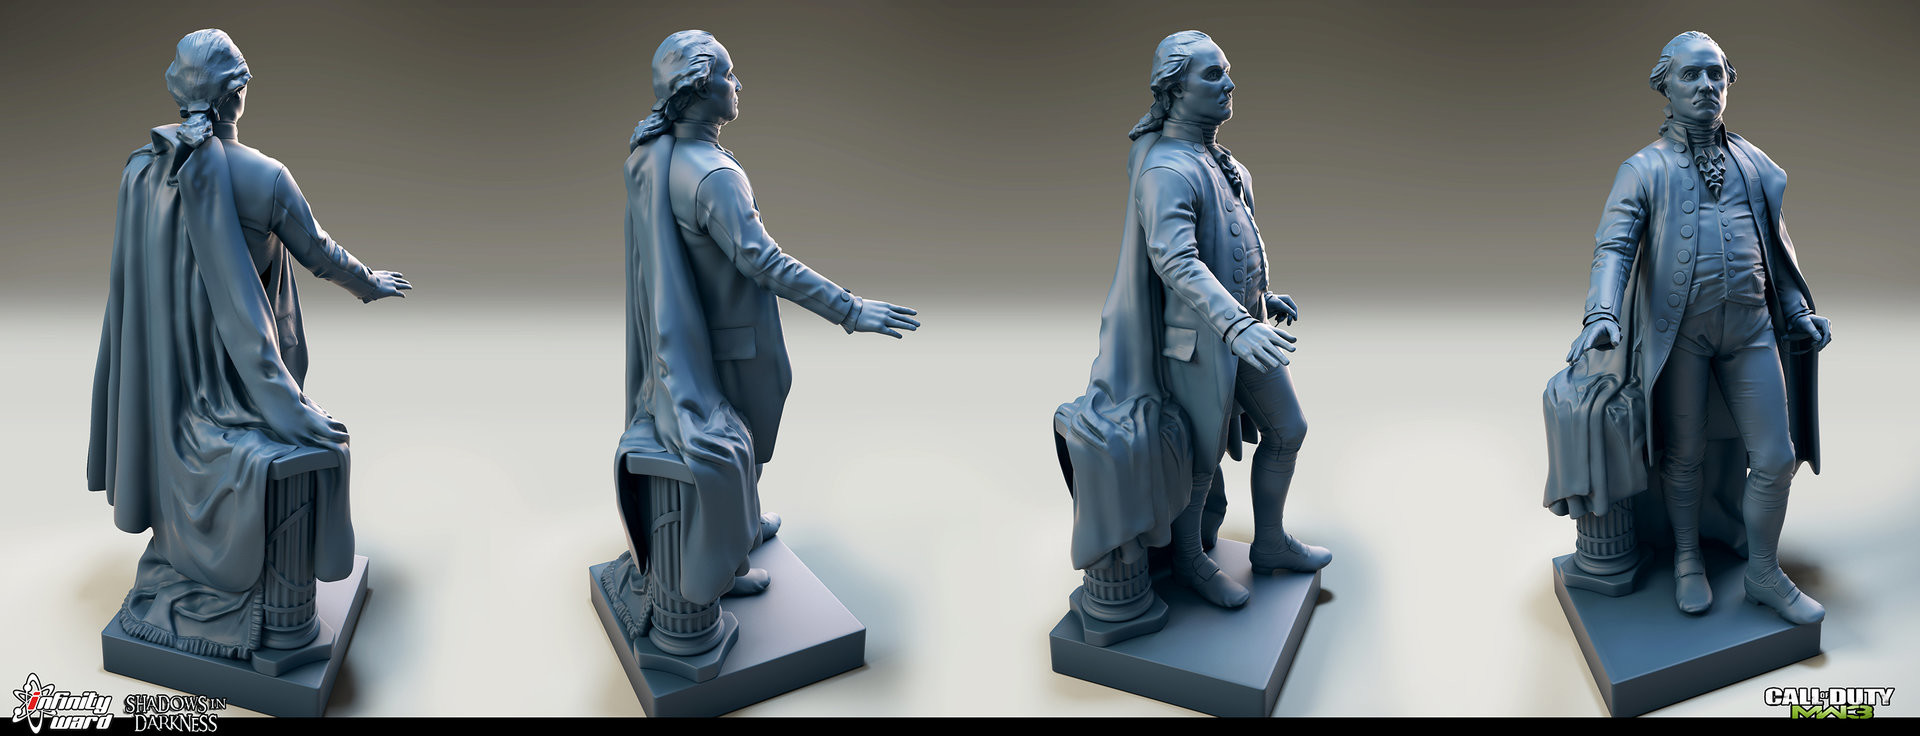 Udell Infante - George Washington Prop Statue